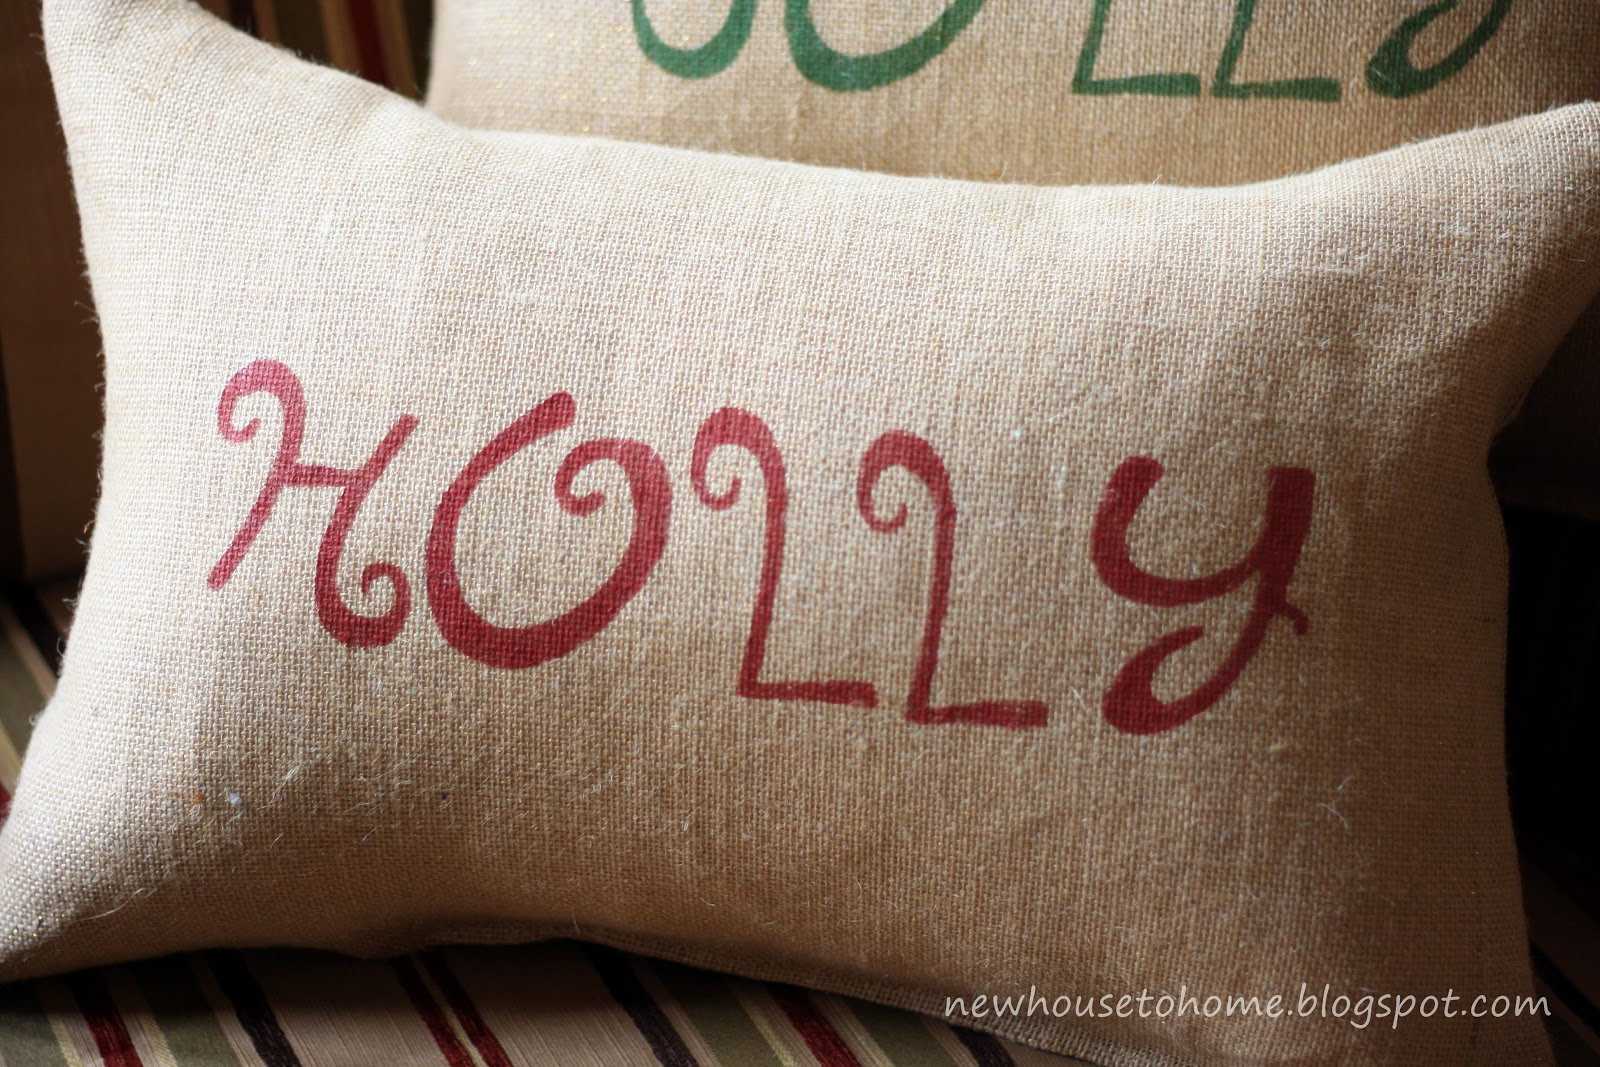 Christmas Pillows on Pinterest | Christmas Pillow, Pillows ...